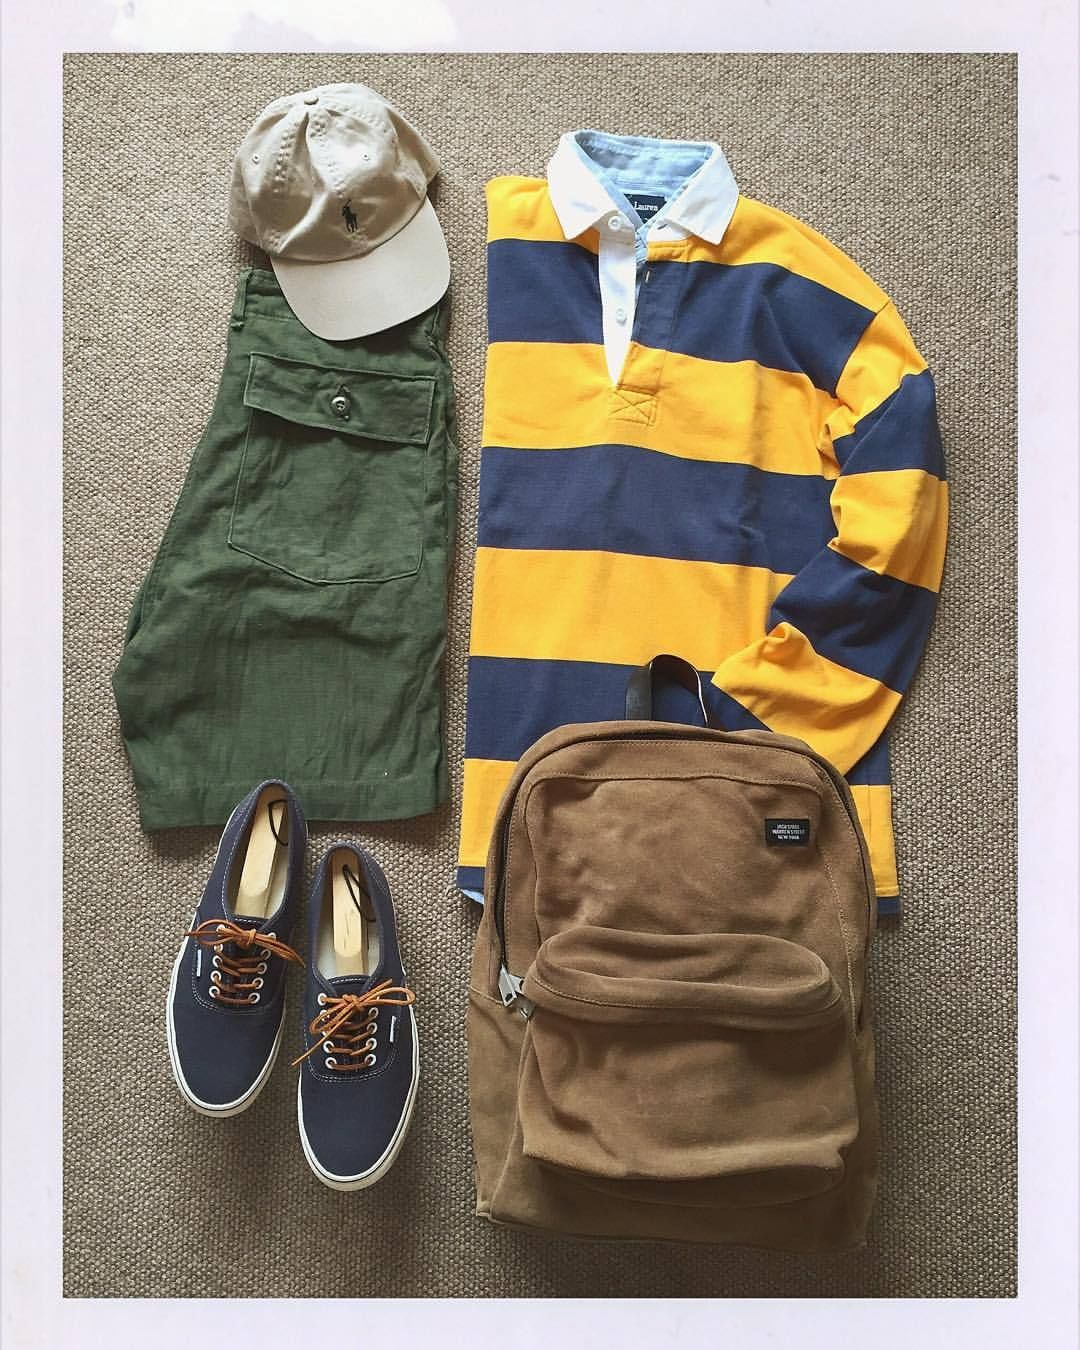 Today's Outfit. #Barbarian #RugbyShirt #RalphLauren #ChambrayShirt RalphLauren #6PanelCap 70's U.S.Army #FatigueShort #JackSpade Suede #DayPack #Vans #JCrew #Authentic #outfitoftheday #outfitgrid #OOTD #DailyFashion #Cordinate #Vintage #Fashion...